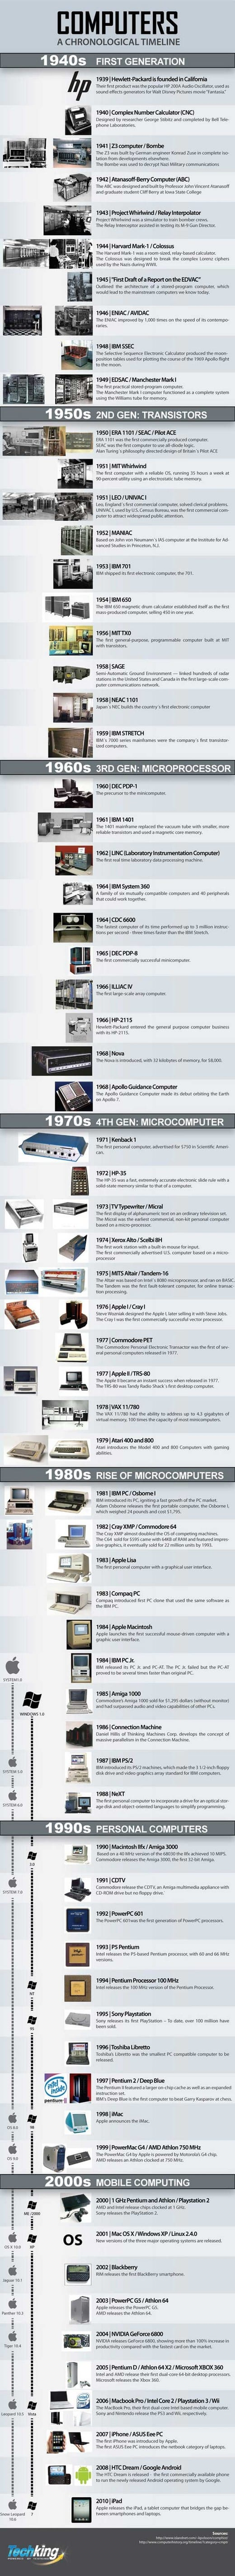 Computer infography